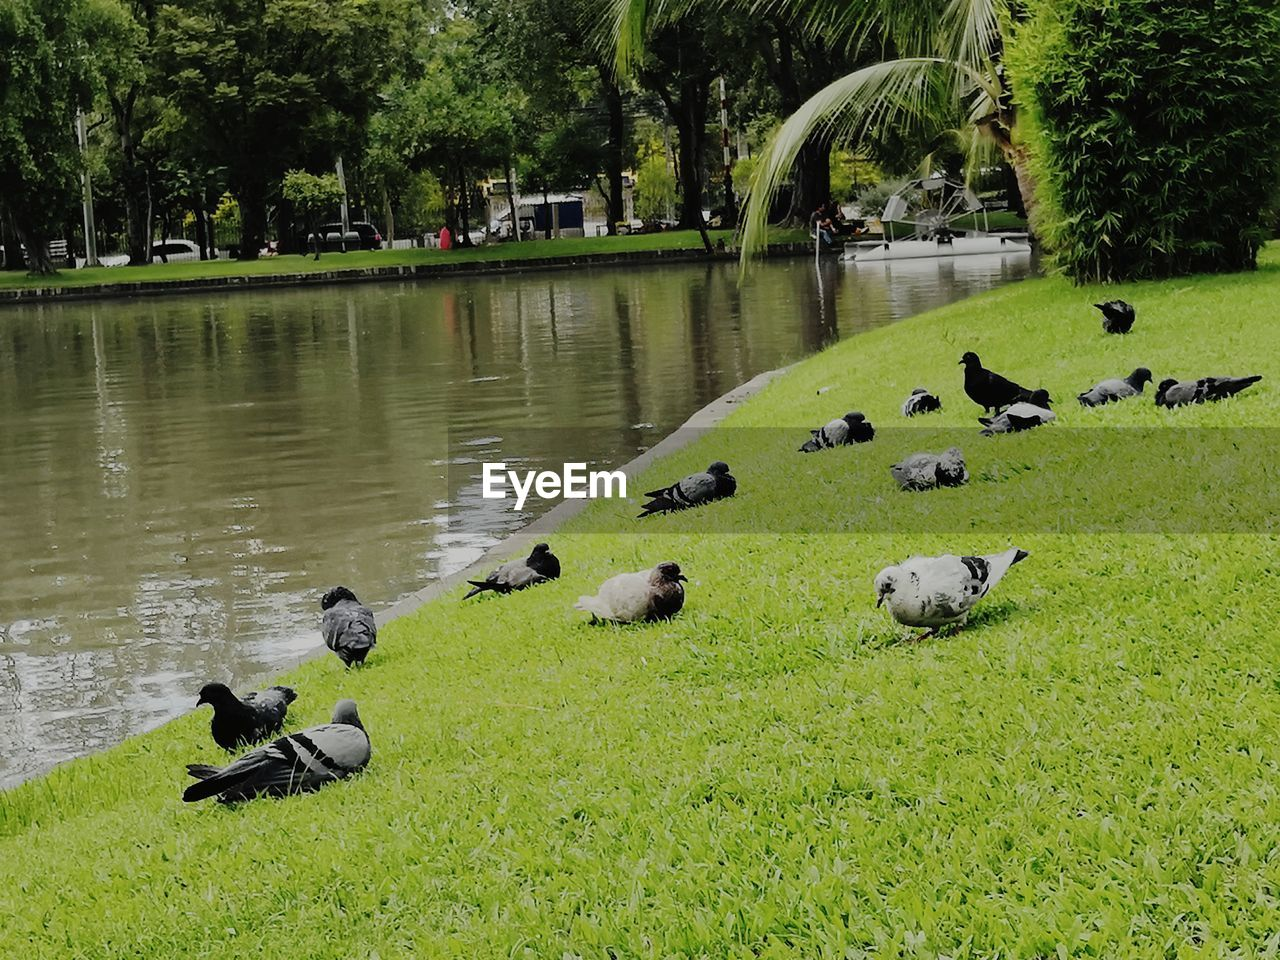 group of animals, plant, animal, bird, water, animal themes, tree, vertebrate, animals in the wild, animal wildlife, lake, large group of animals, nature, no people, day, park, grass, duck, outdoors, flock of birds